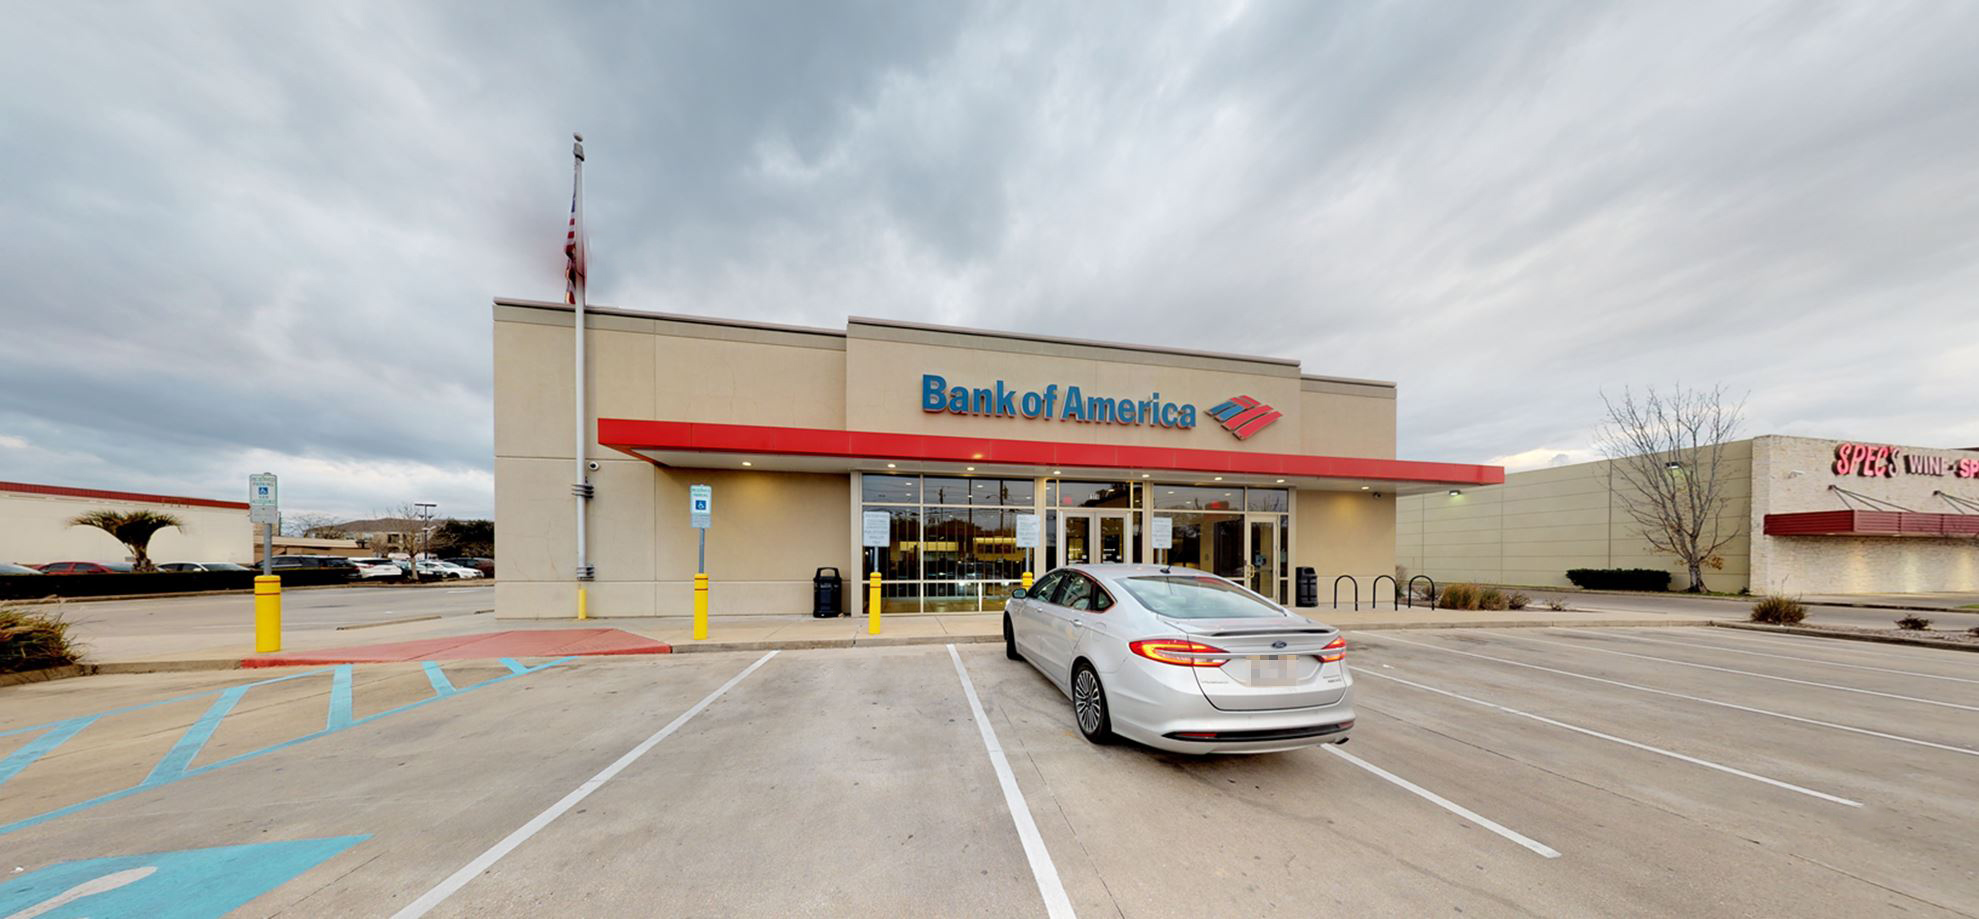 Bank of America financial center with drive-thru ATM | 8108 Westheimer Rd, Houston, TX 77063